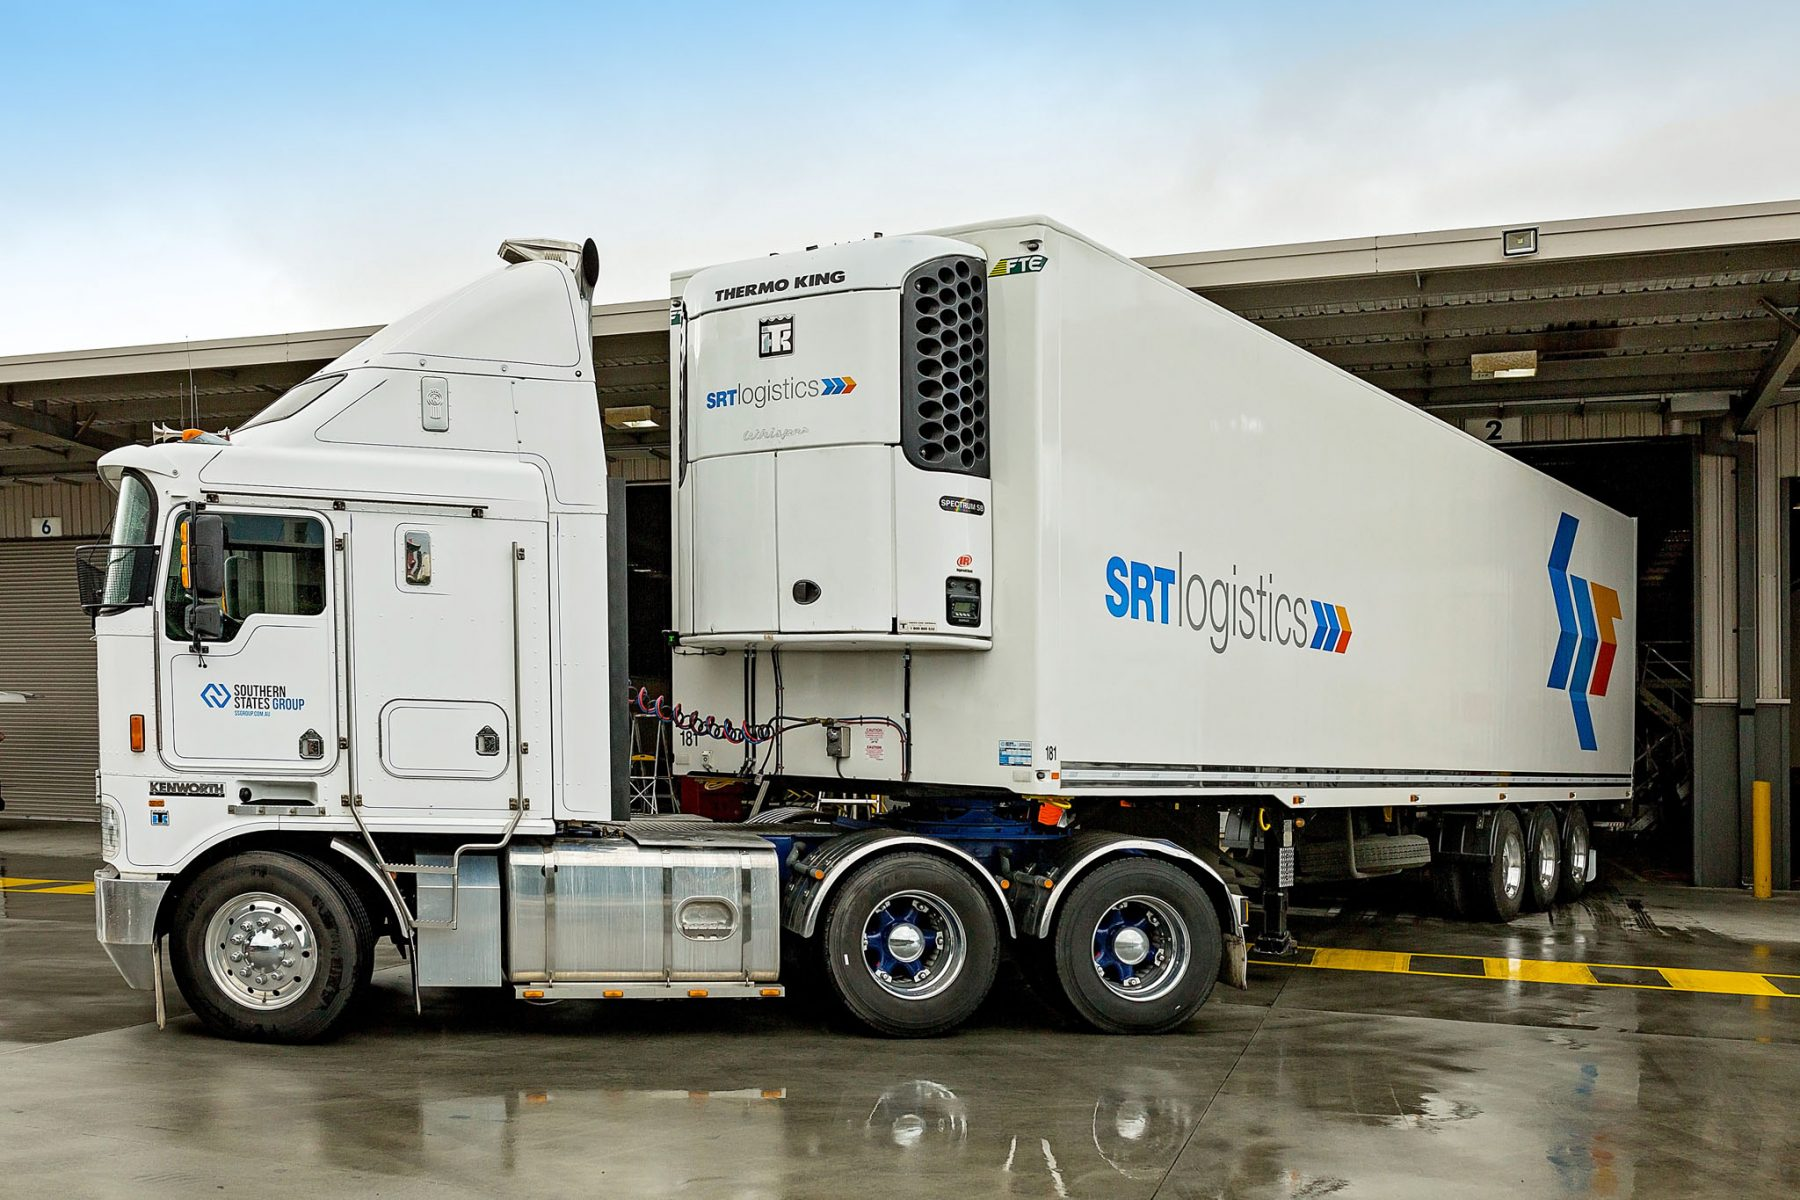 Thermo King unit on SRT Logistics Trailer